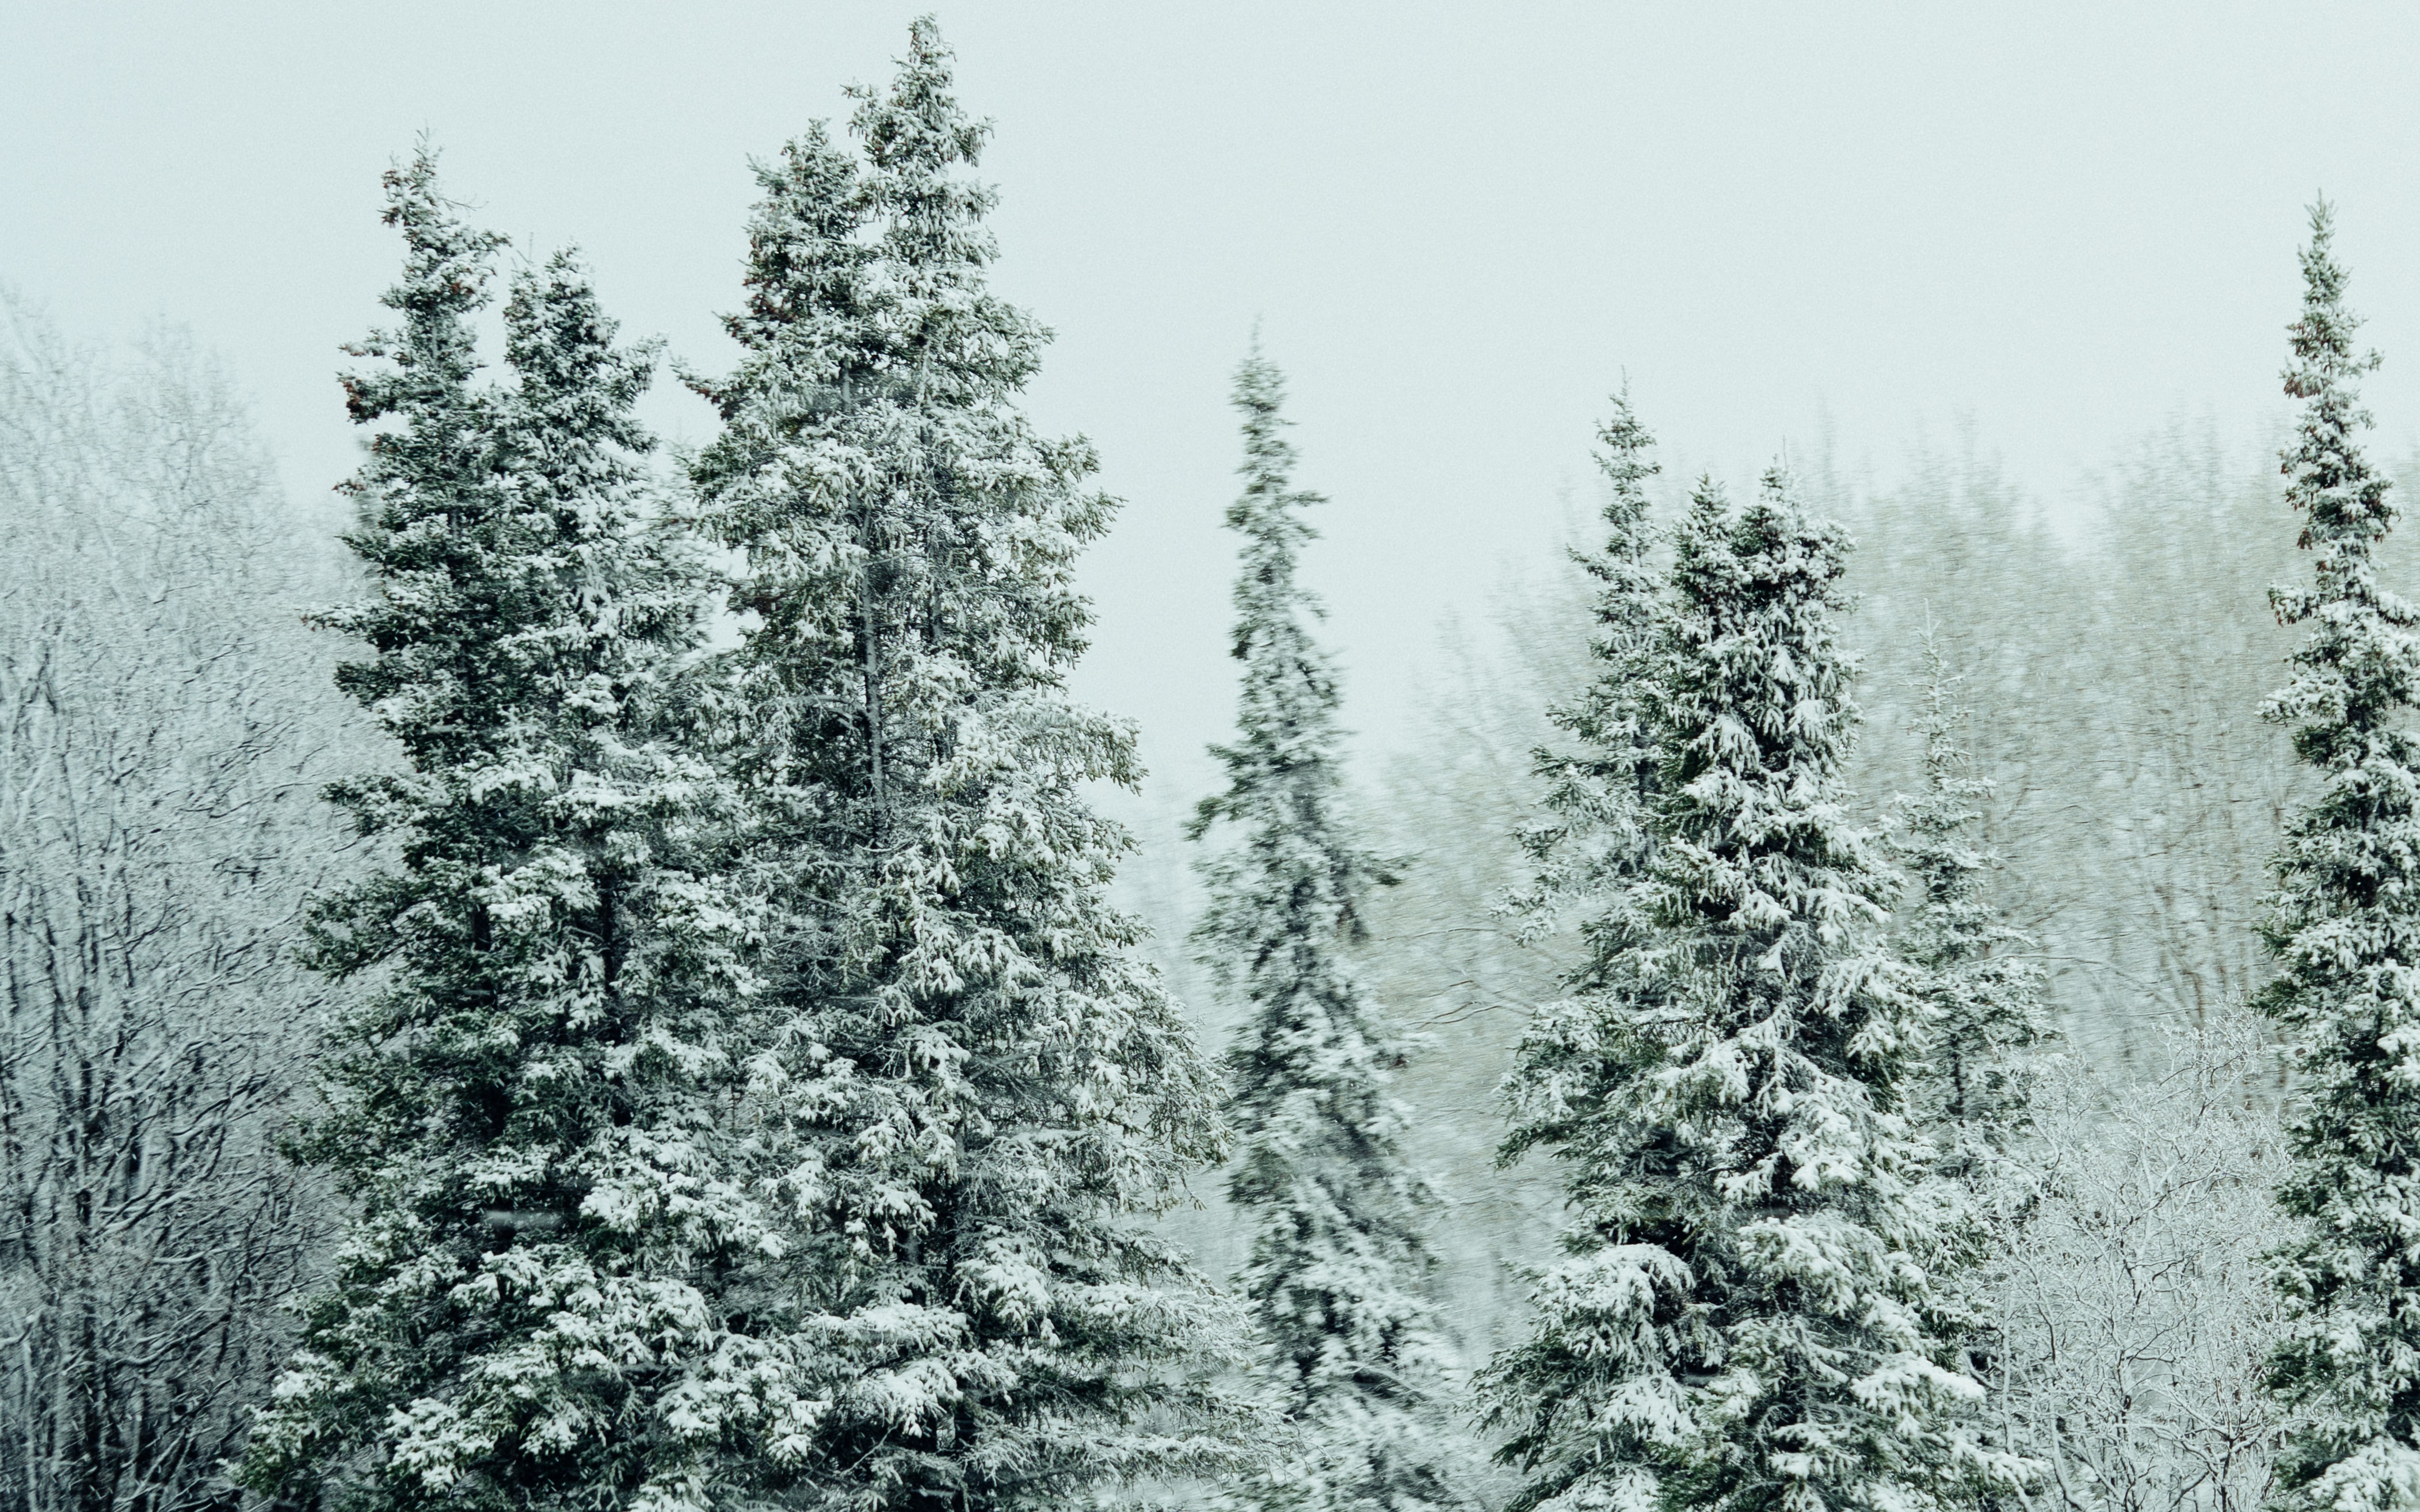 The tops of evergreen trees in a snowy forest